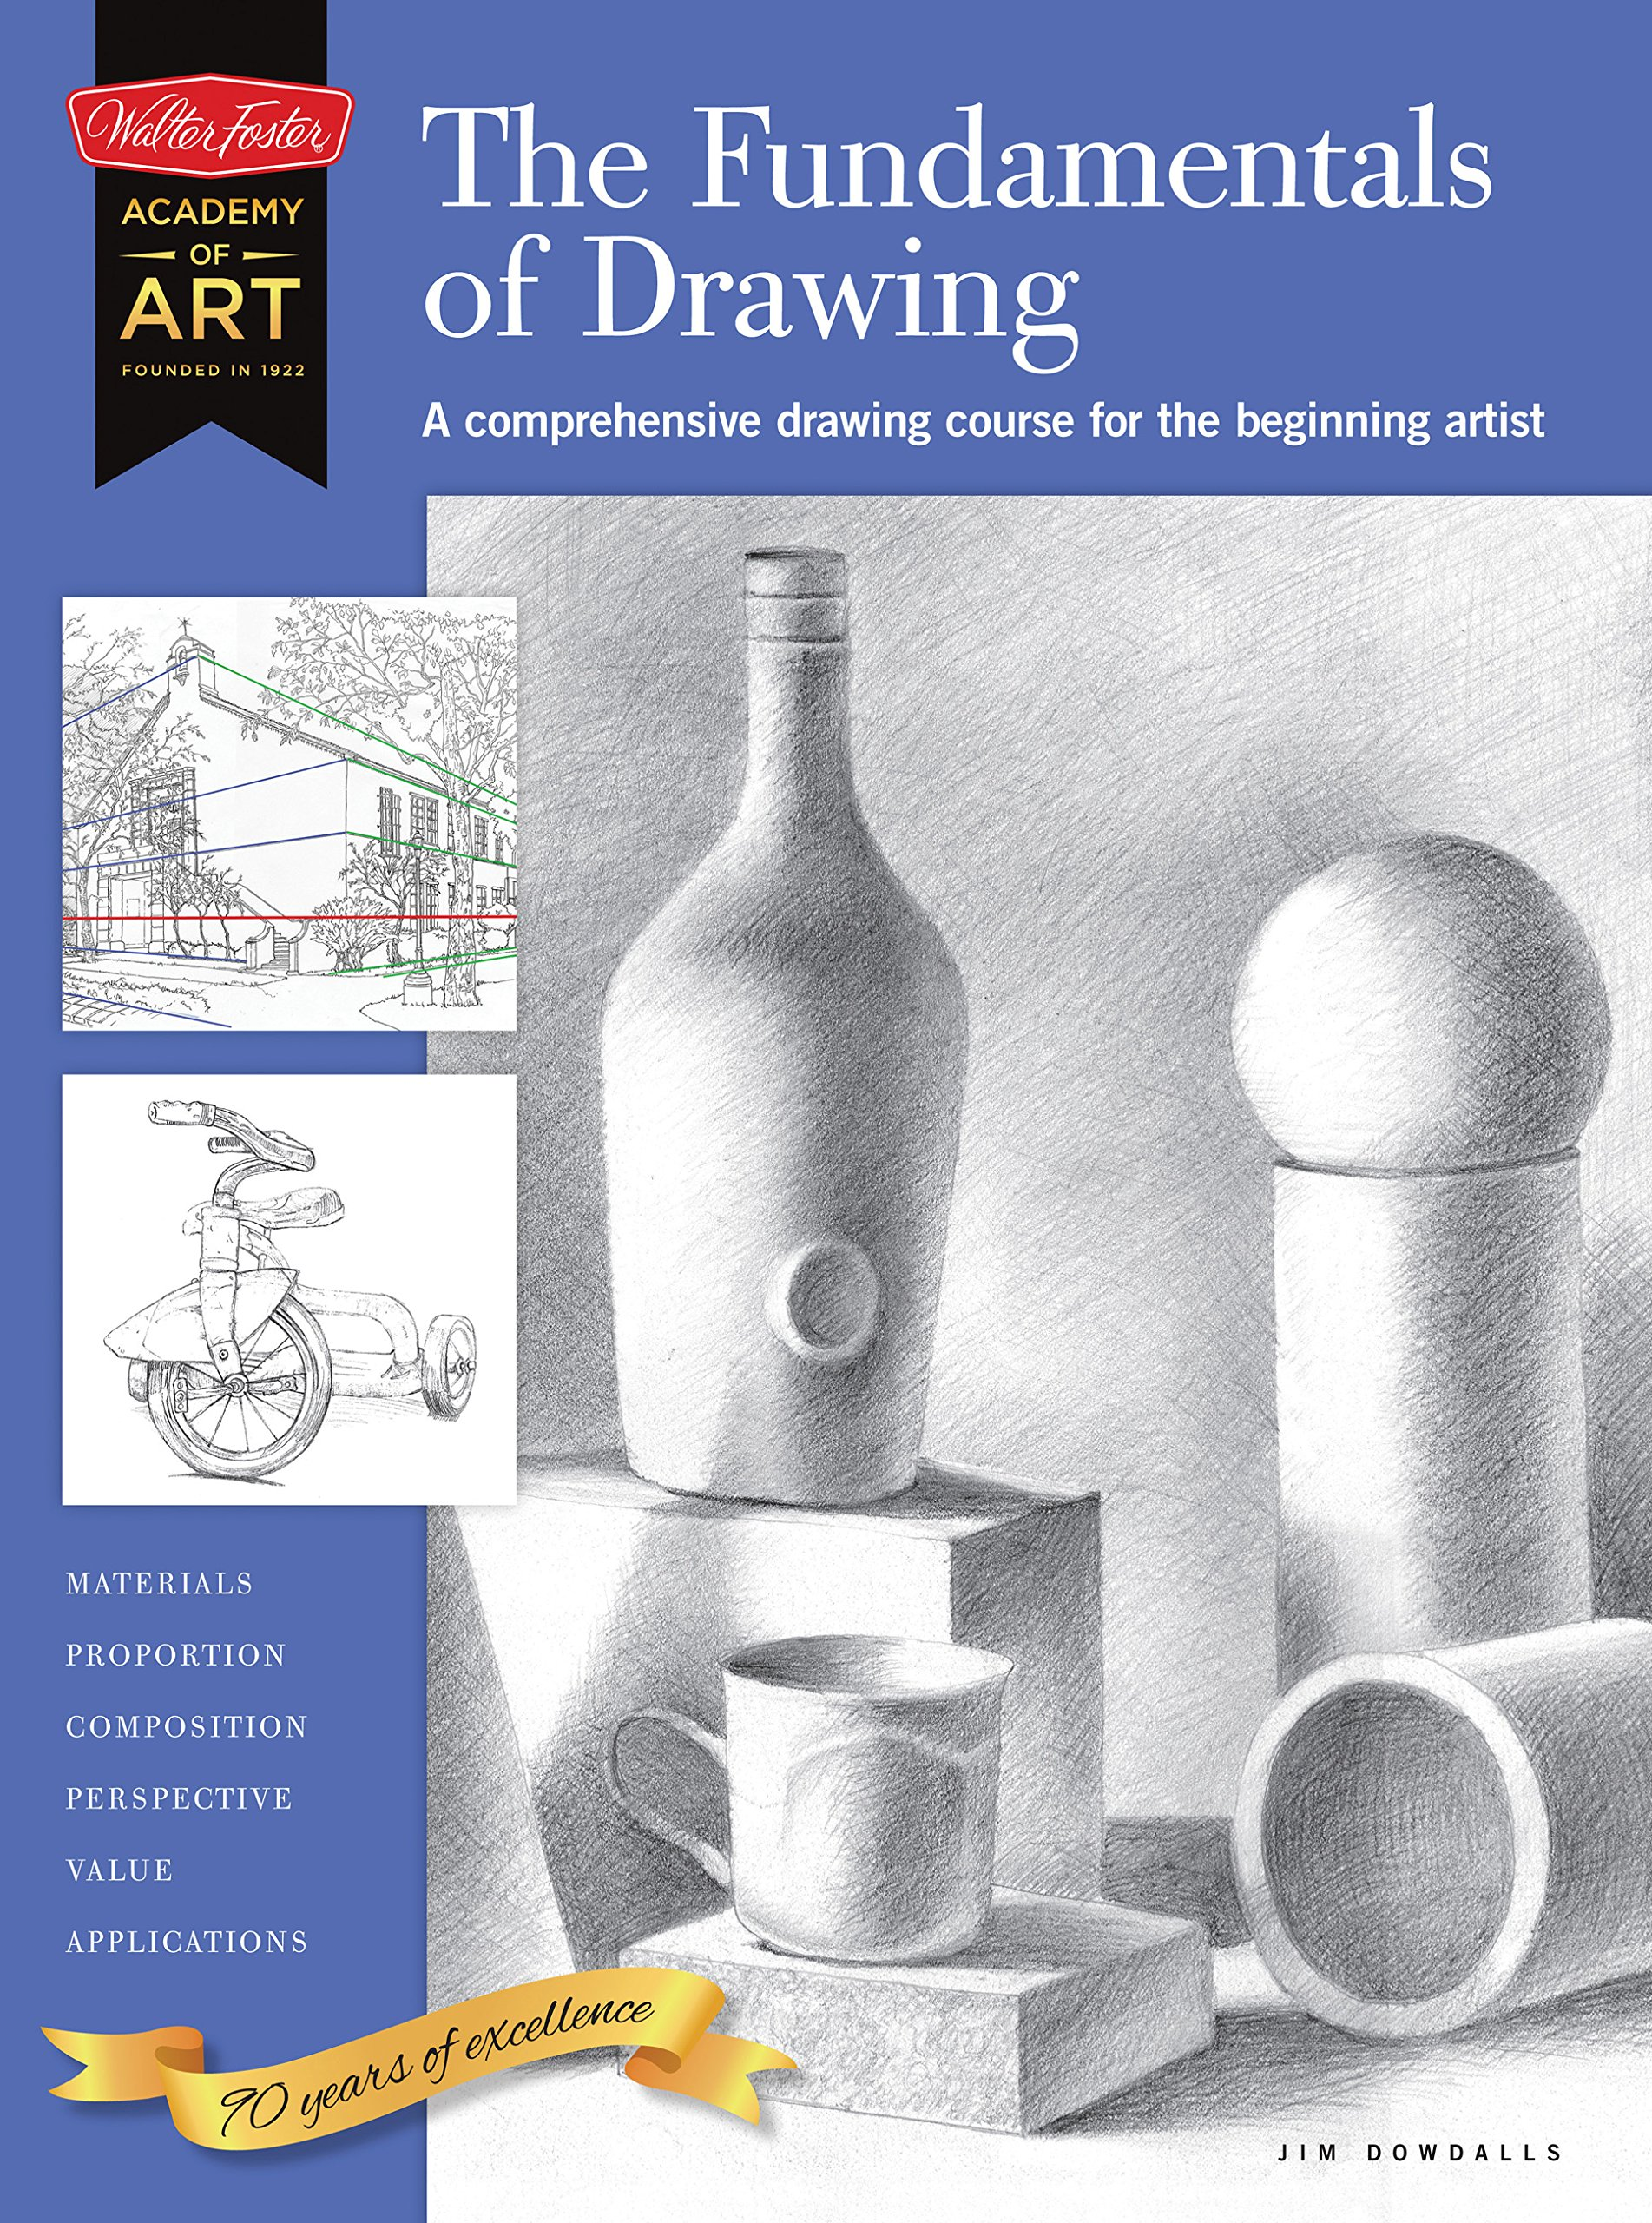 Read Online The Fundamentals of Drawing: A comprehensive drawing course for the beginning artist (Academy of Art) ebook